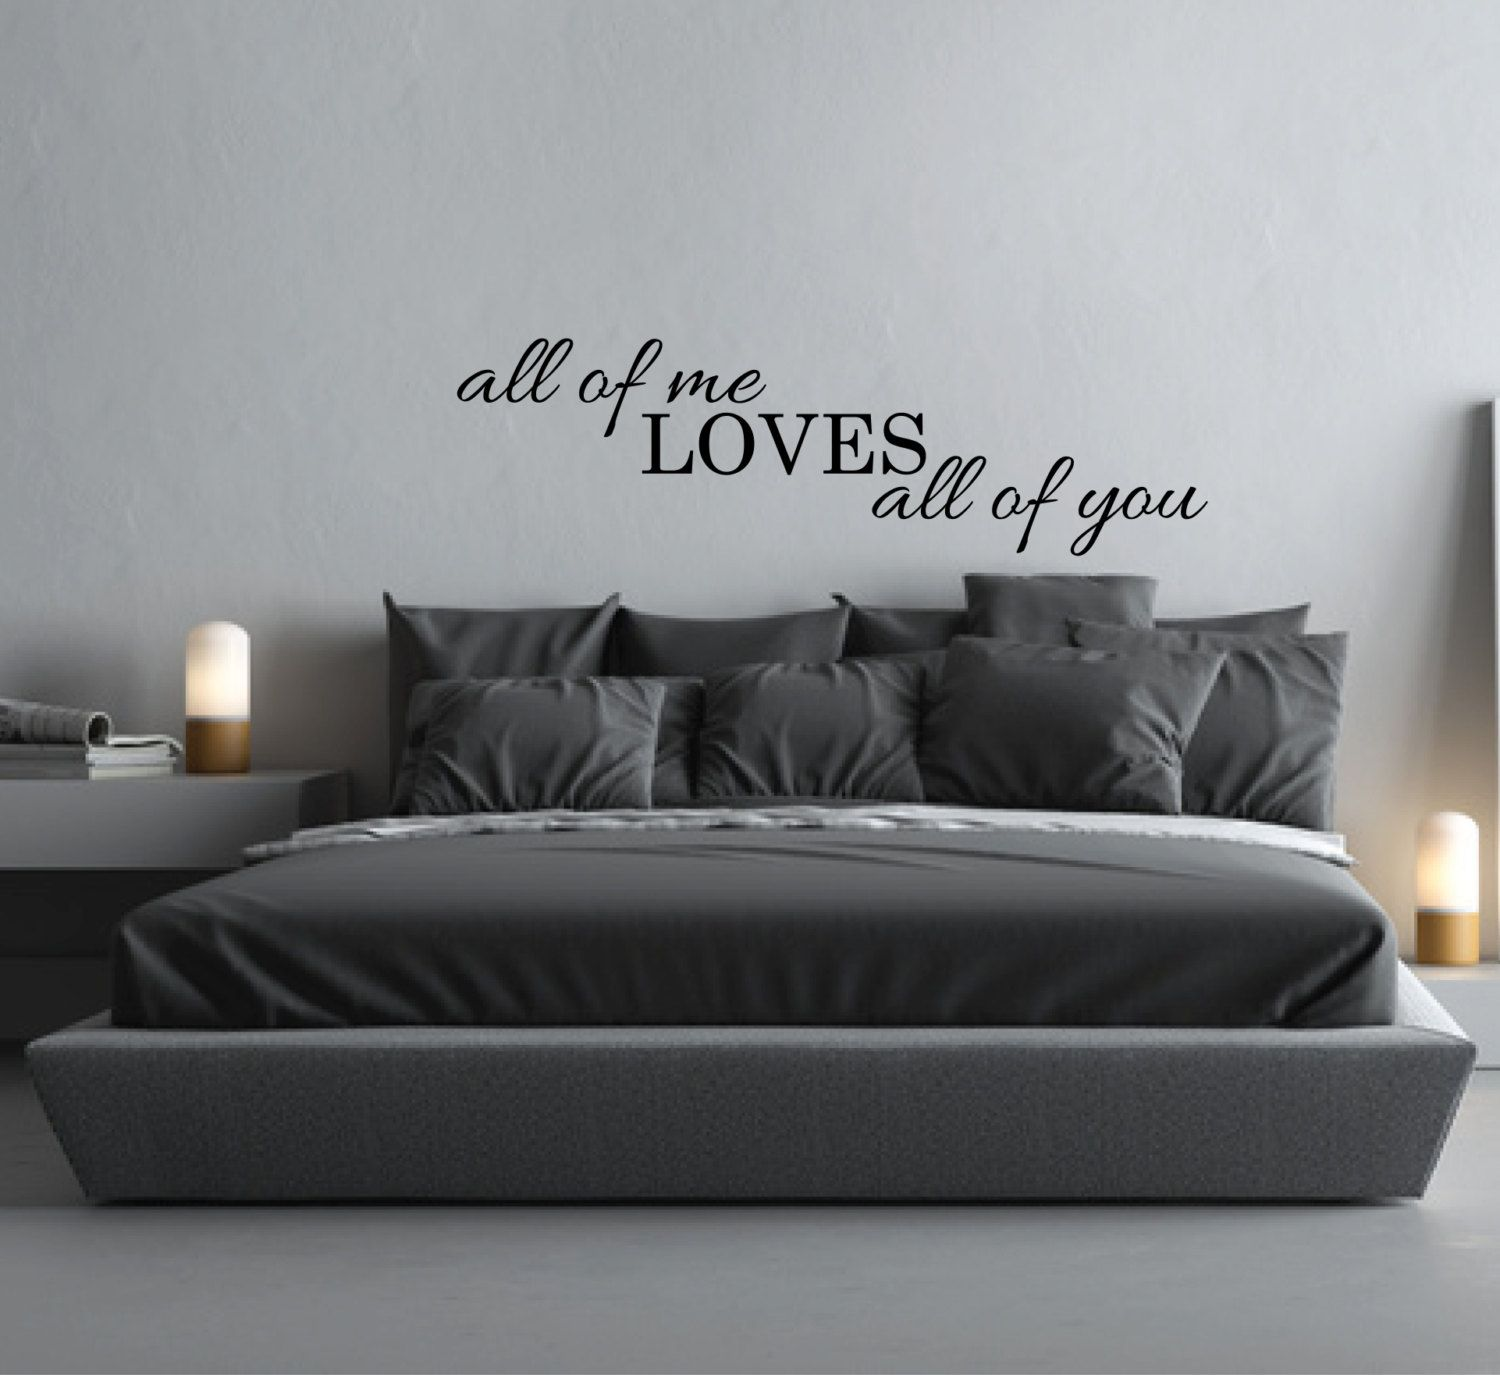 Wall Sticker Quote All Of Me Loves All Of You Above Bed Decor Bedroom Love  Decal Vinyl Wall Decal Bedroom Wall Decor Song Lyrics Wall Decal